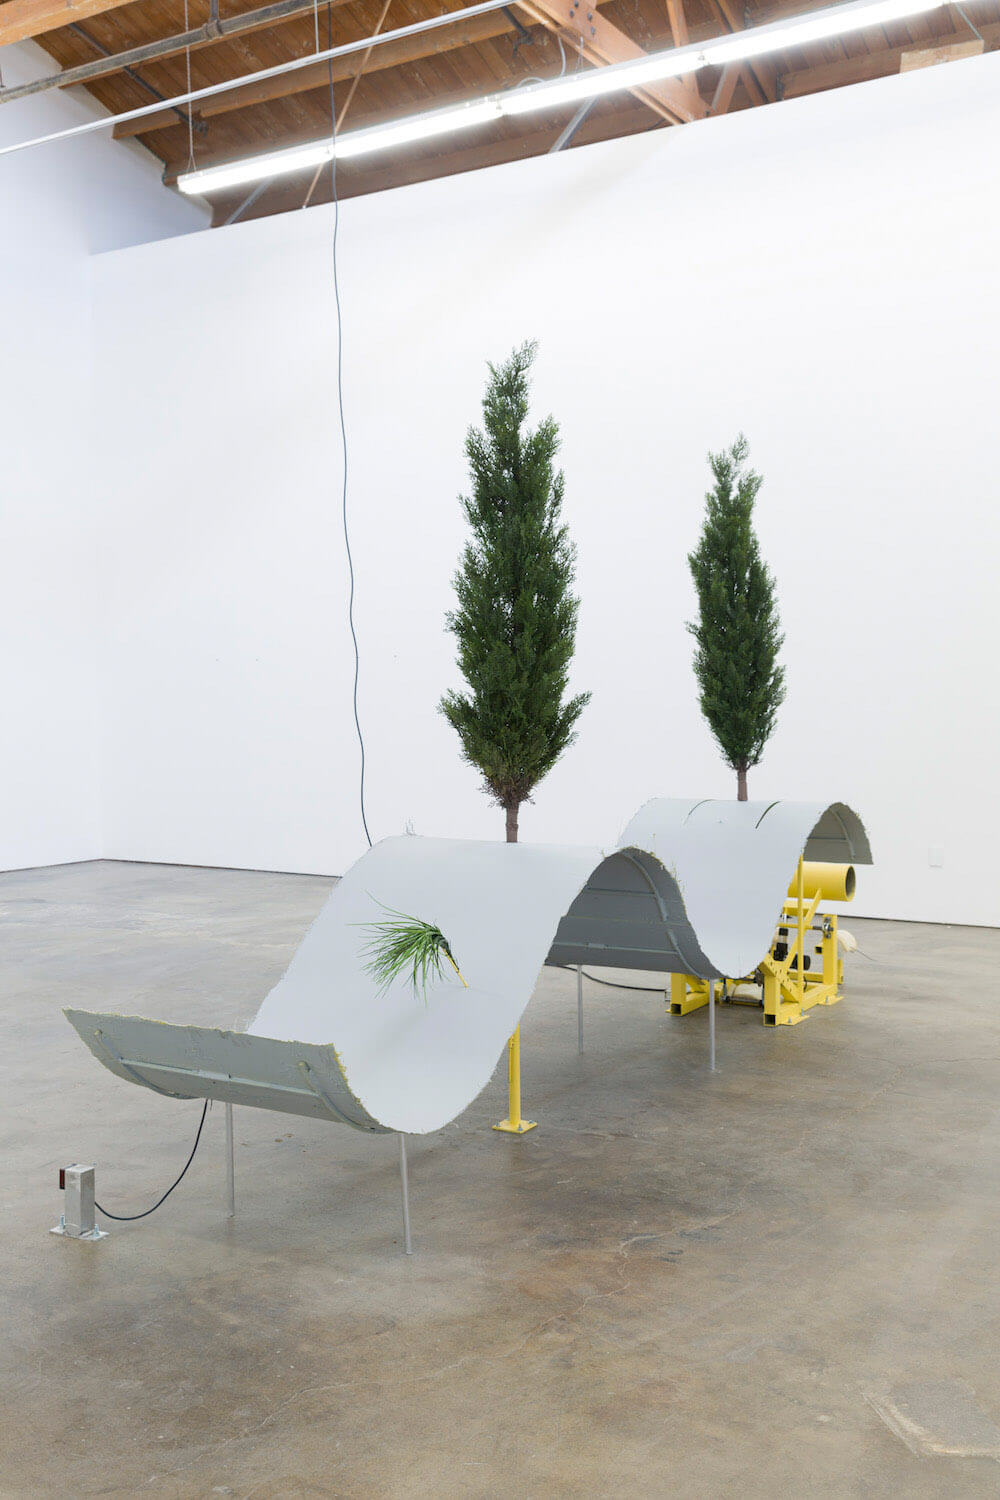 Gaudin, Collateral Stimulus, 2019 (DG 19.002) A